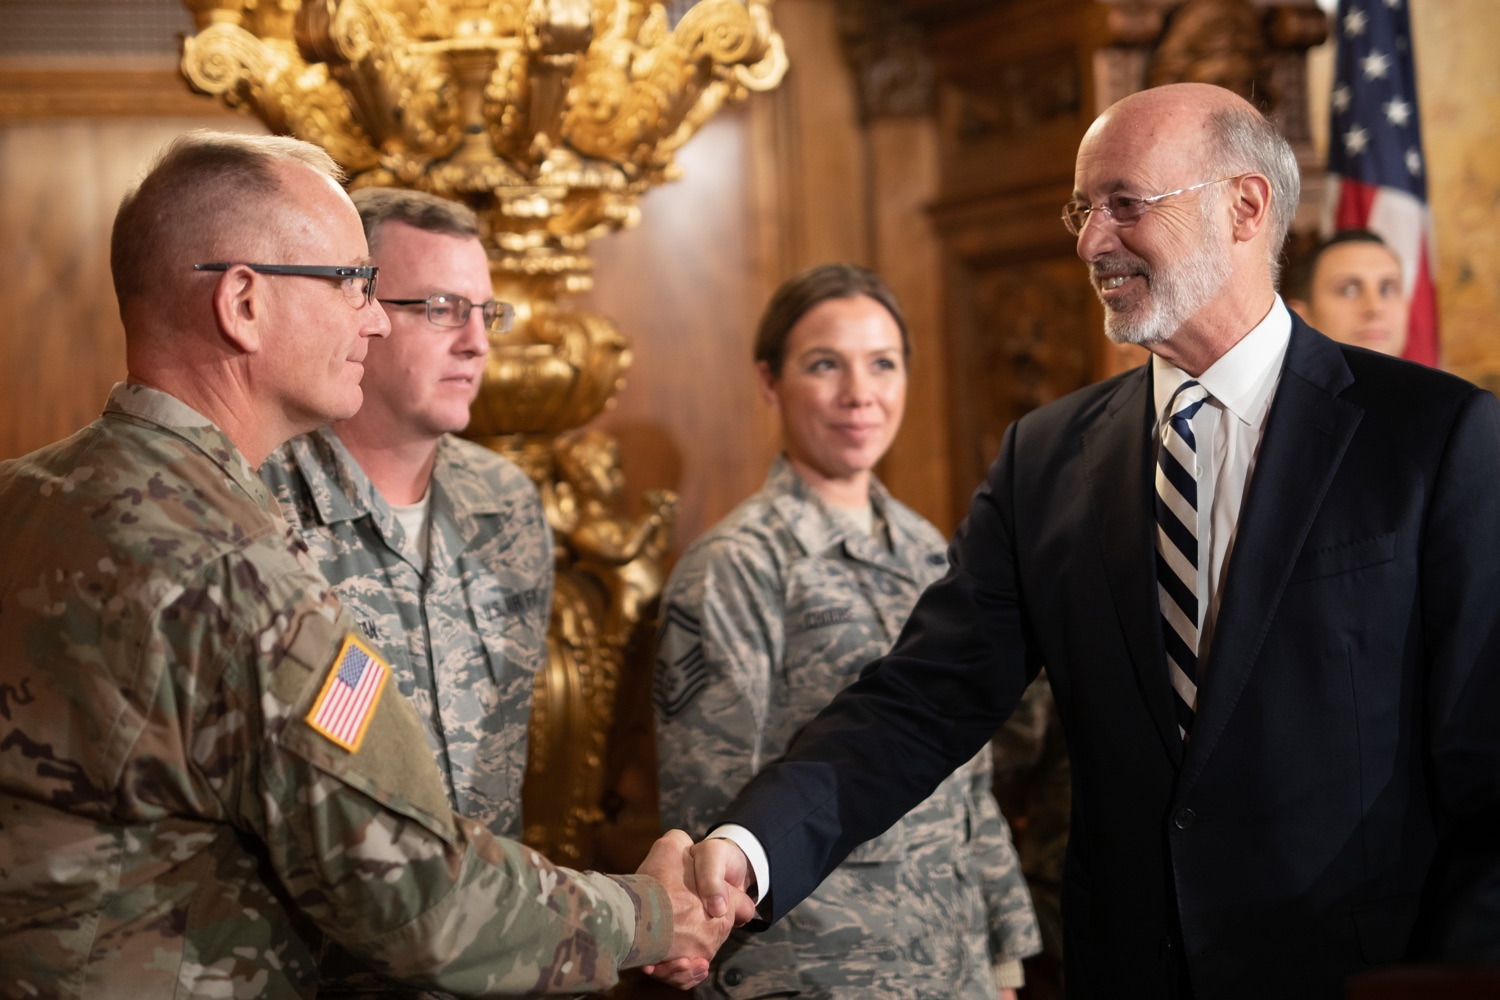 """<a href=""""http://filesource.abacast.com/commonwealthofpa/photo/17563_gov_giBill_dz_007.jpg"""" target=""""_blank"""">⇣Download Photo<br></a>Governor Tom Wolf greeting atendees. Governor Tom Wolf, joined by Pennsylvanias adjutant general and head of the Department of Military and Veterans Affairs Maj. Gen. Anthony Carelli, legislators and PA National Guard members and their families, encouraged PA National Guard members to take advantage of the new Military Family Education Program, or PA GI bill, now open for enrollment. Harrisburg, PA Monday, November 4 2019"""